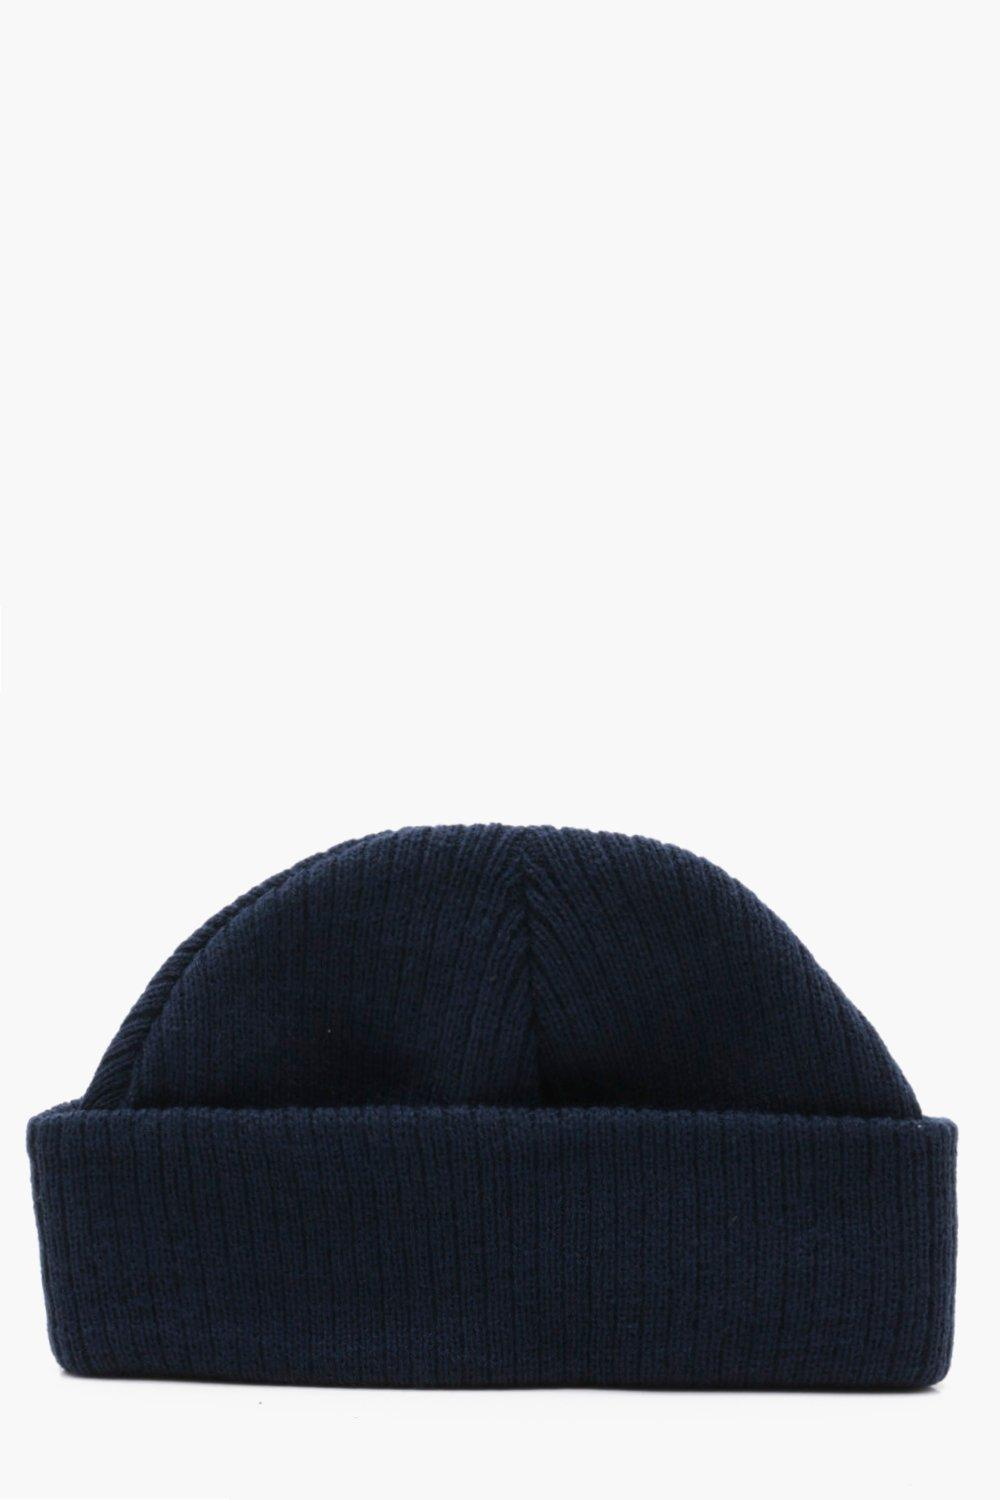 b18df254128 Lyst - Boohoo Ribbed Knit Short Fit Beanie With Turn Up in Blue for Men